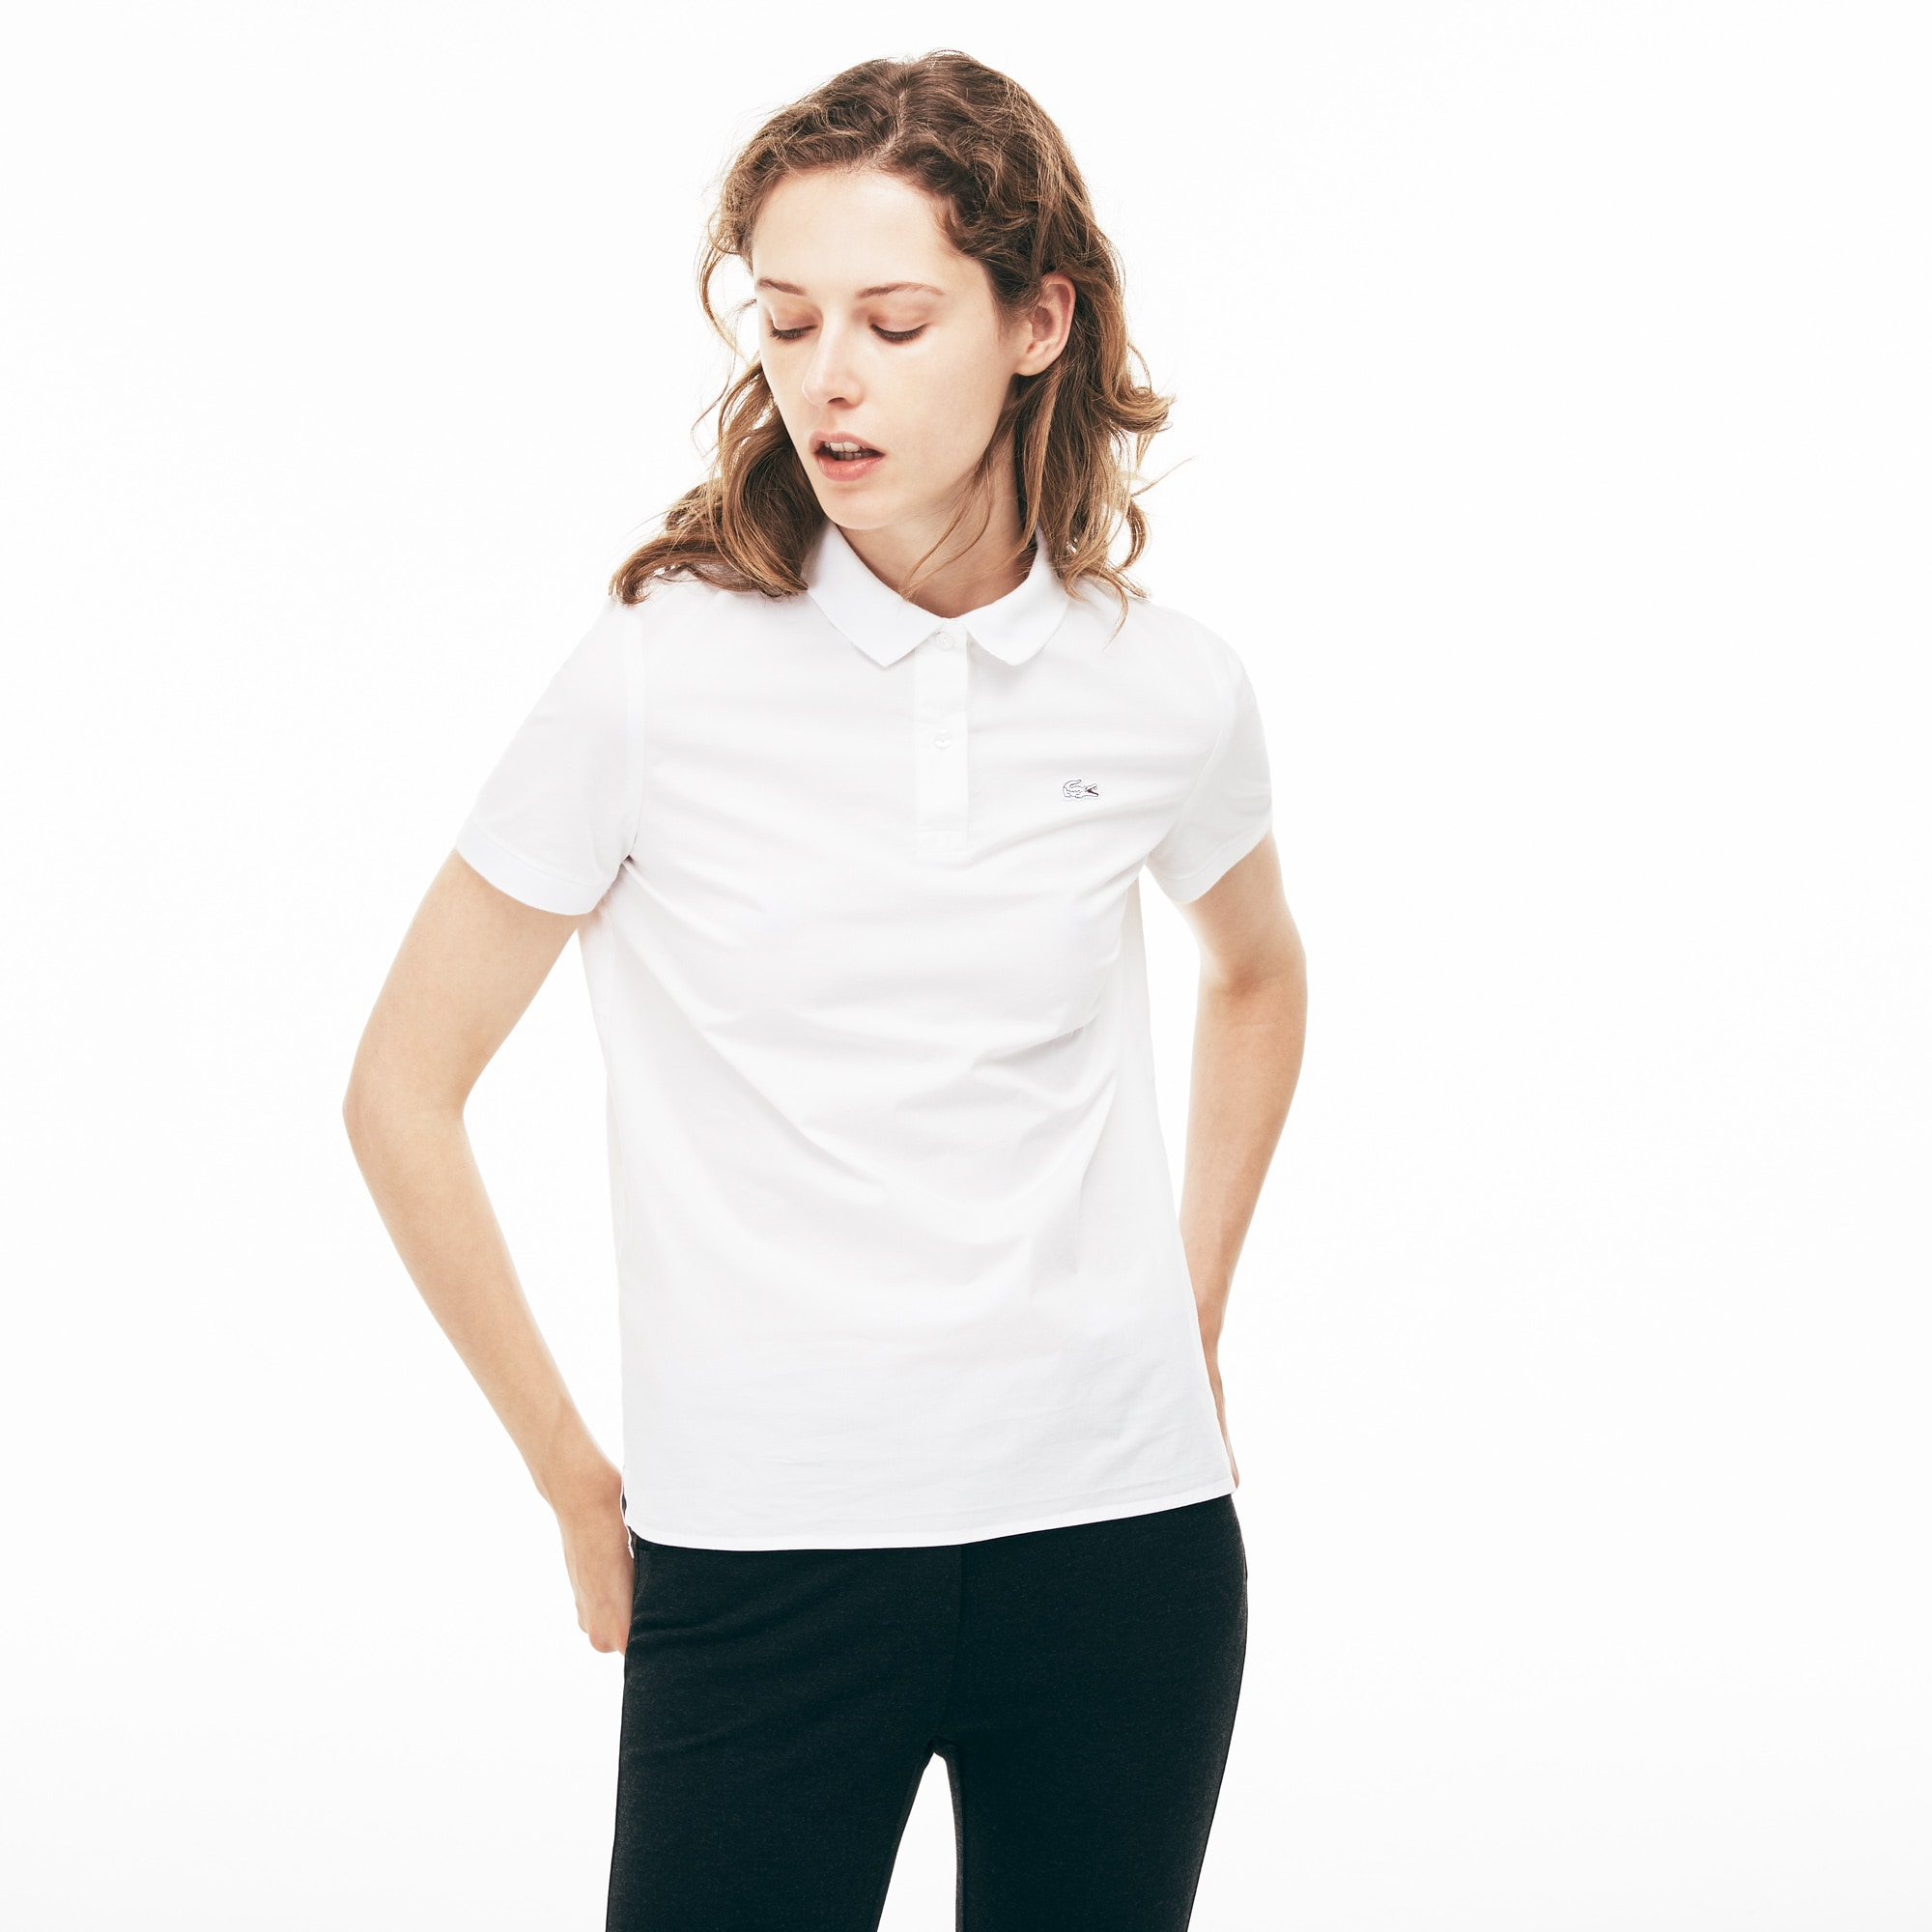 Regular Fit Damen-Poloshirt aus Stretch-Popeline PARIS Kollektion